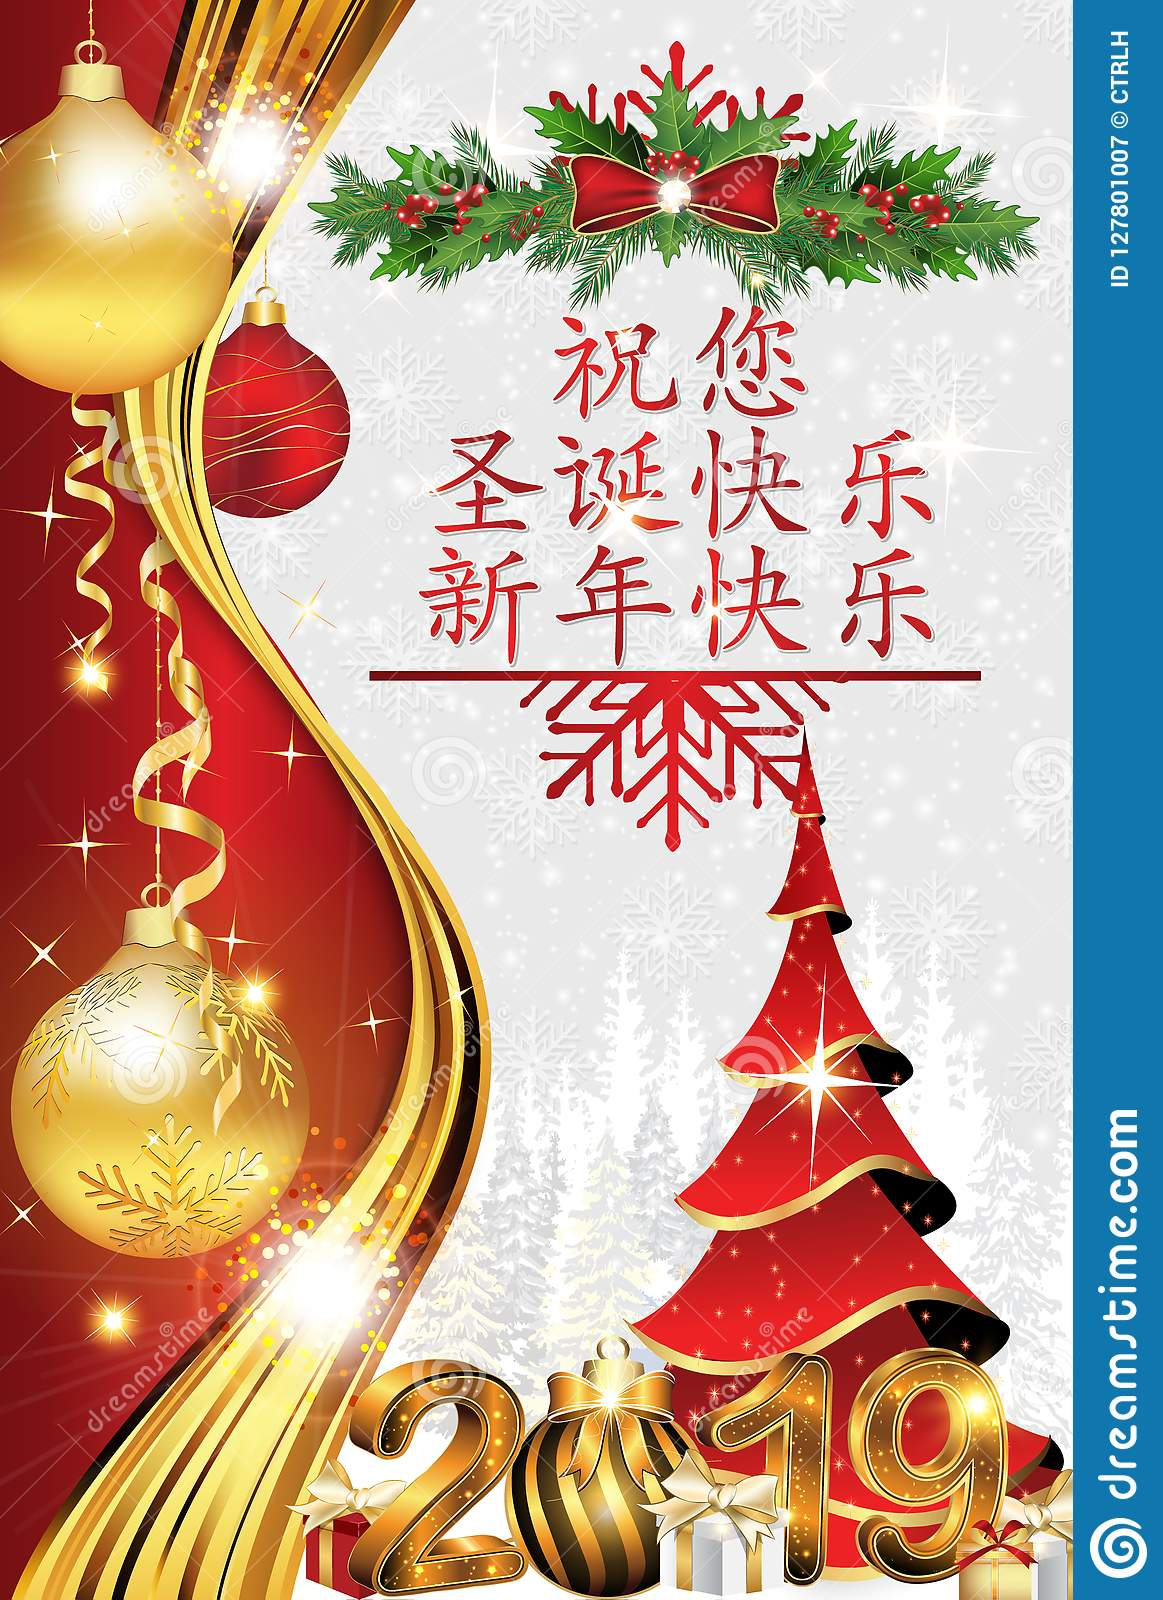 merry christmas and happy new year 2019 greeting card with chinese text stock illustration illustration of sparkle reindeers 127801007 https www dreamstime com merry christmas happy new year greeting card chinese text wishing you merry christmas happy new year greeting image127801007